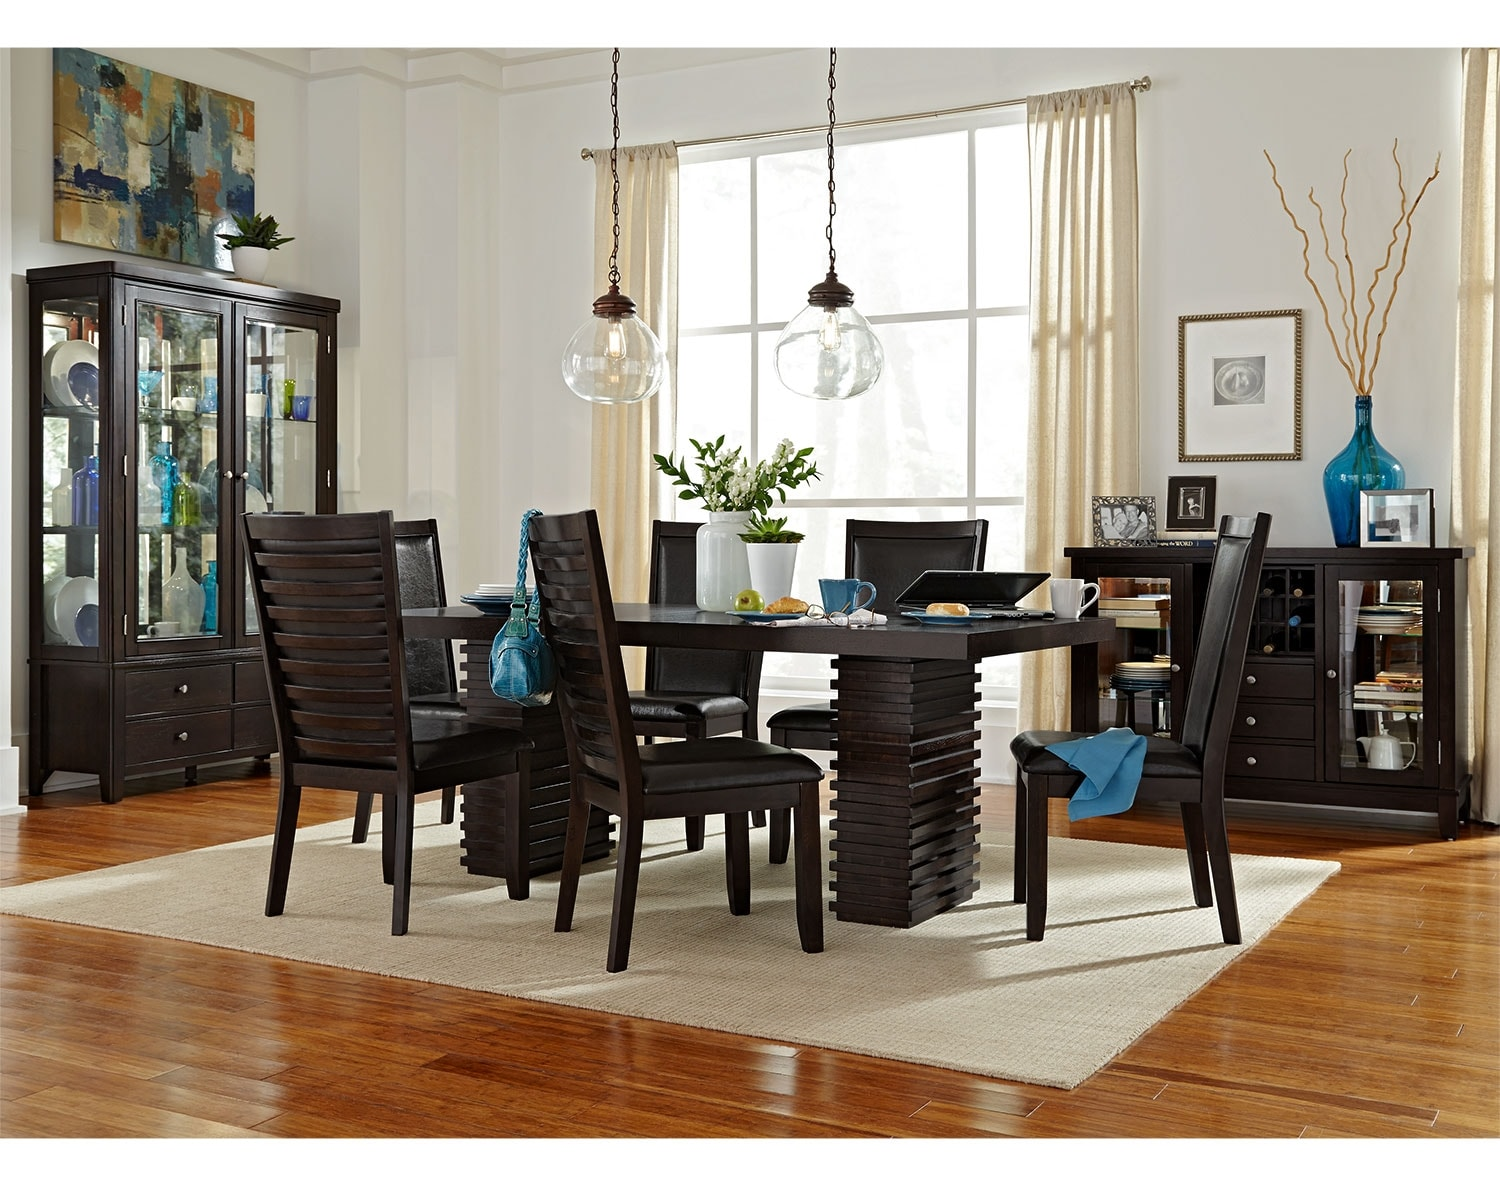 Shop Dining Room Collections | Value City Furniture